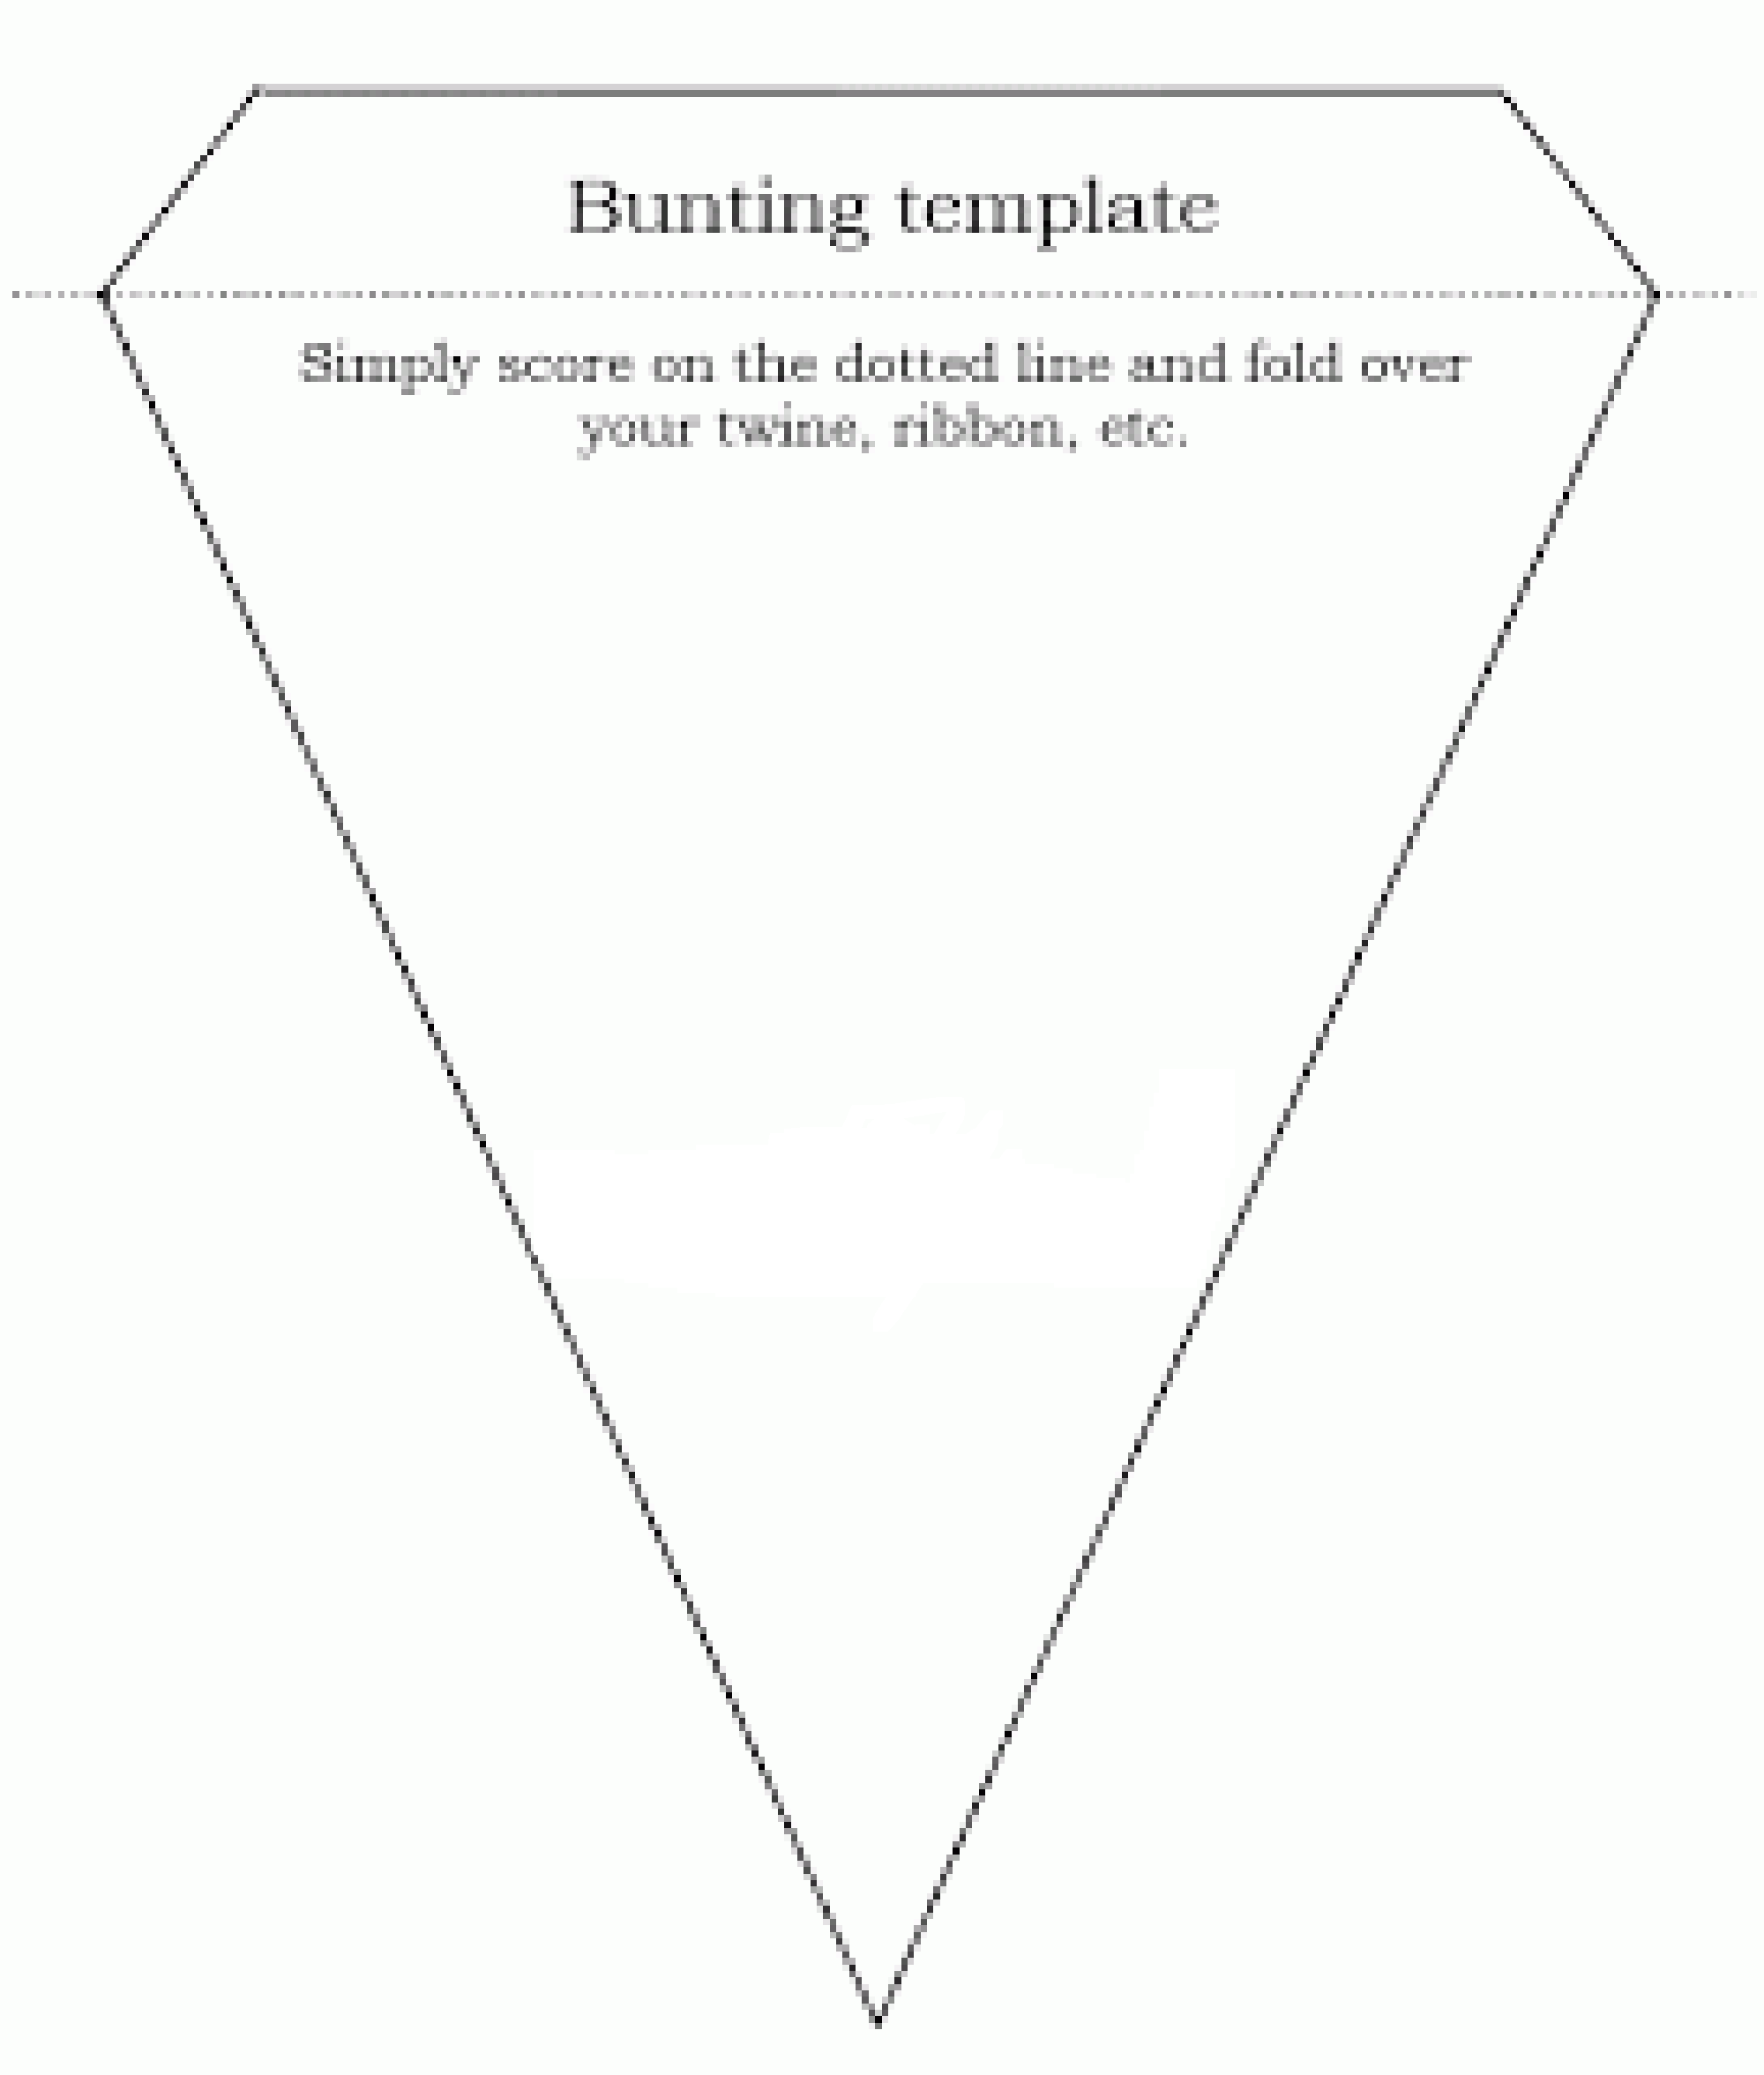 northern soul bunting template